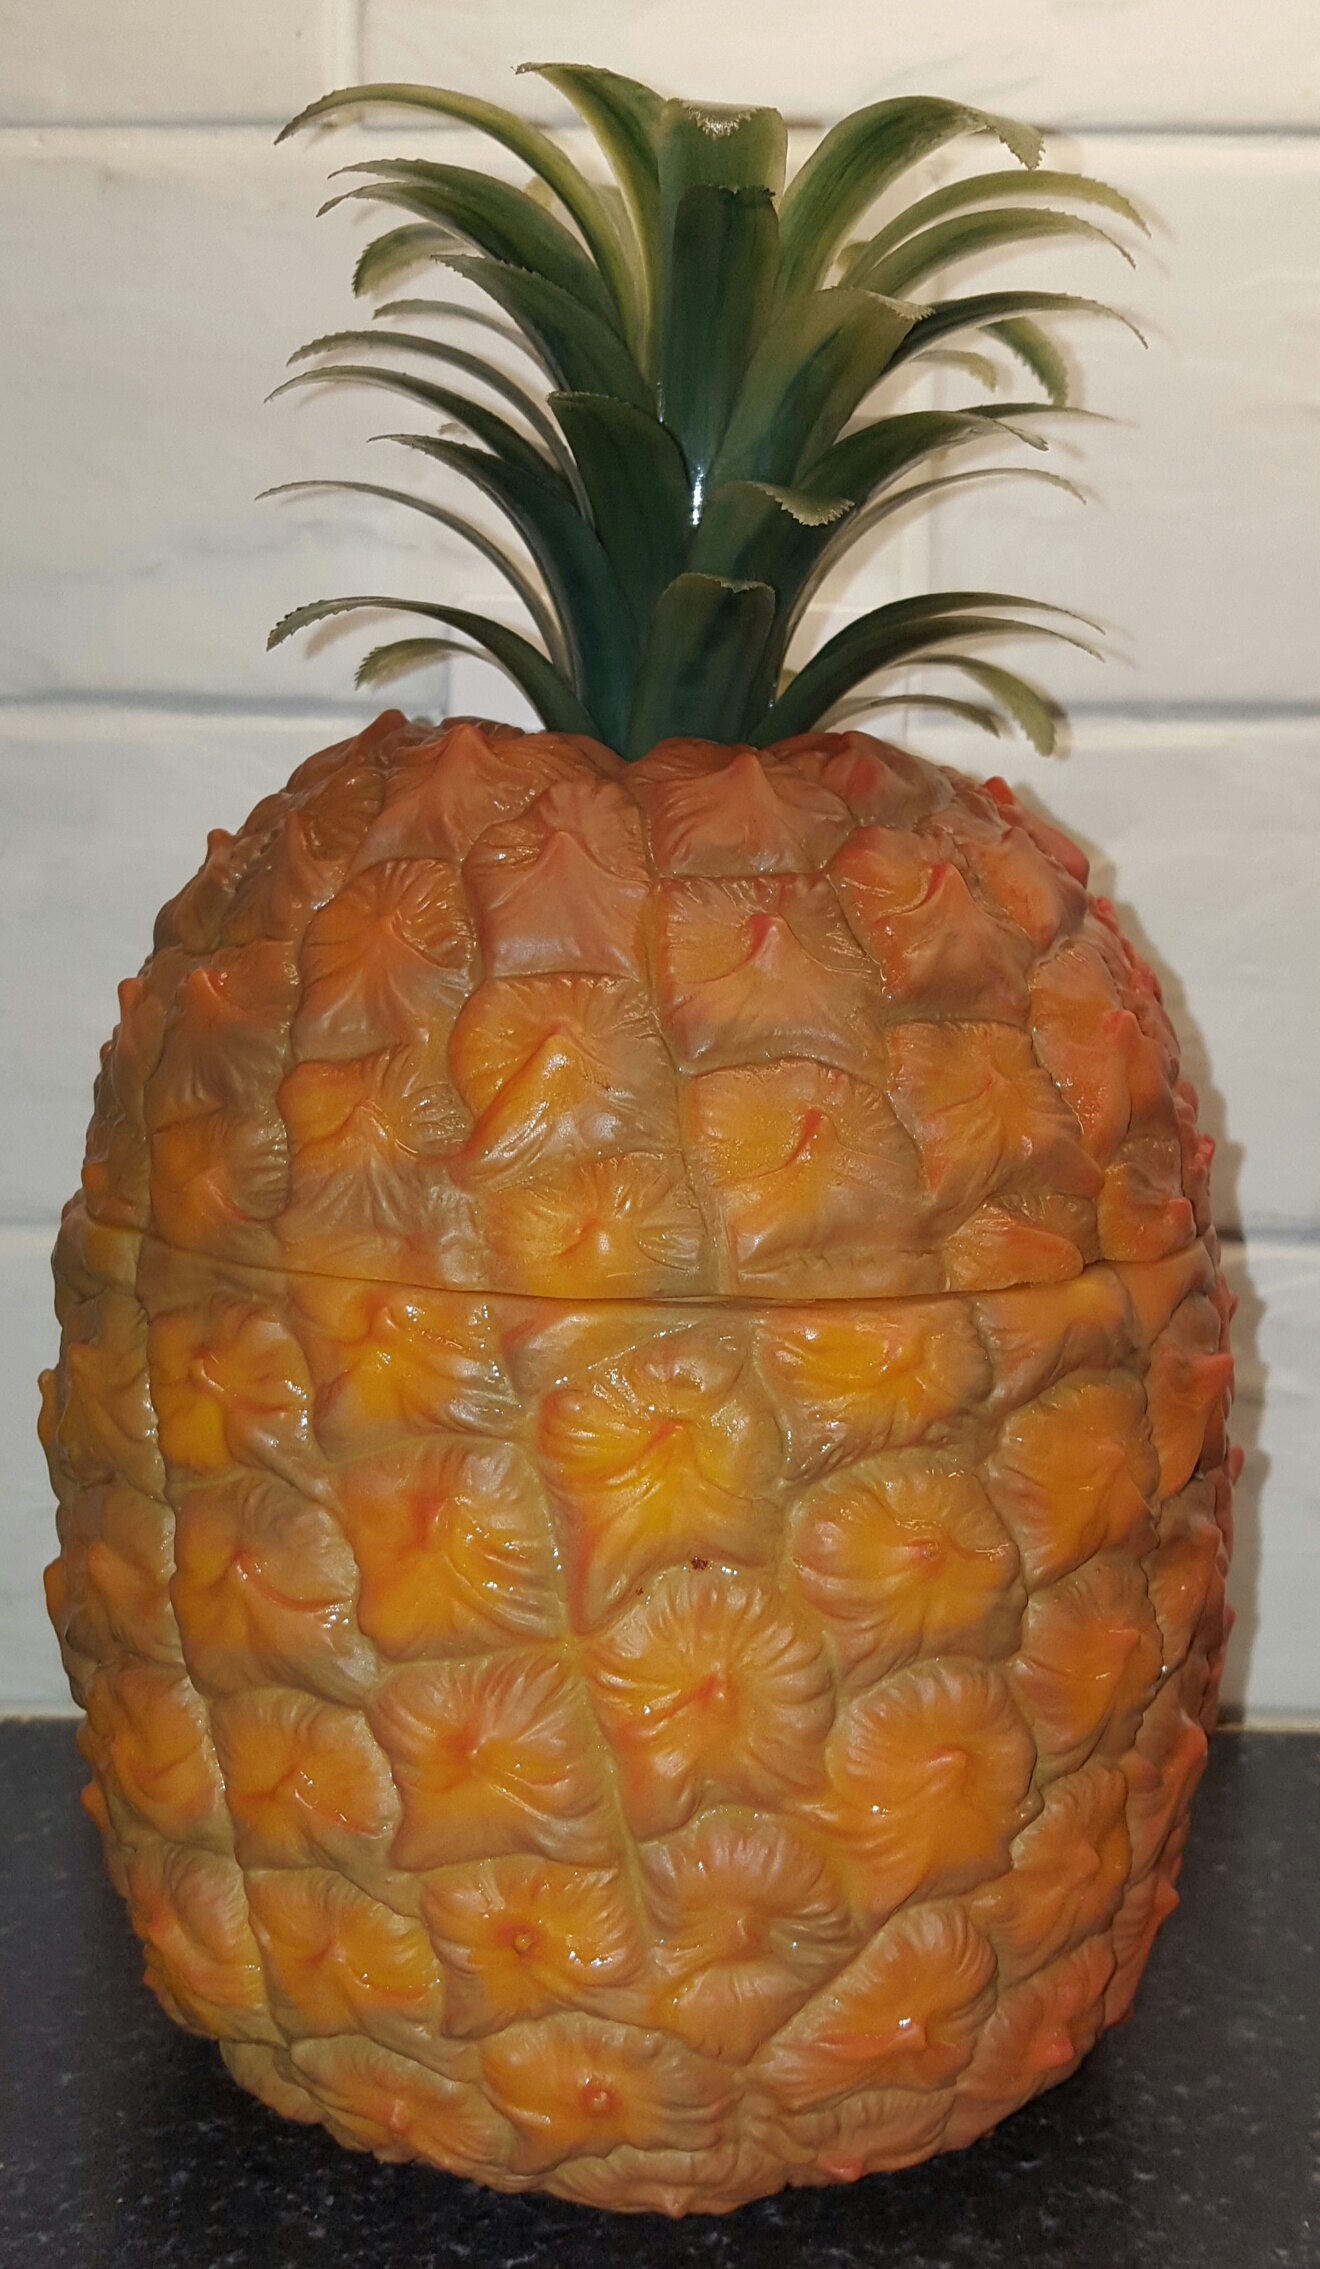 Lot 53 - Vintage Retro Kitsch Pineapple Ice Bucket